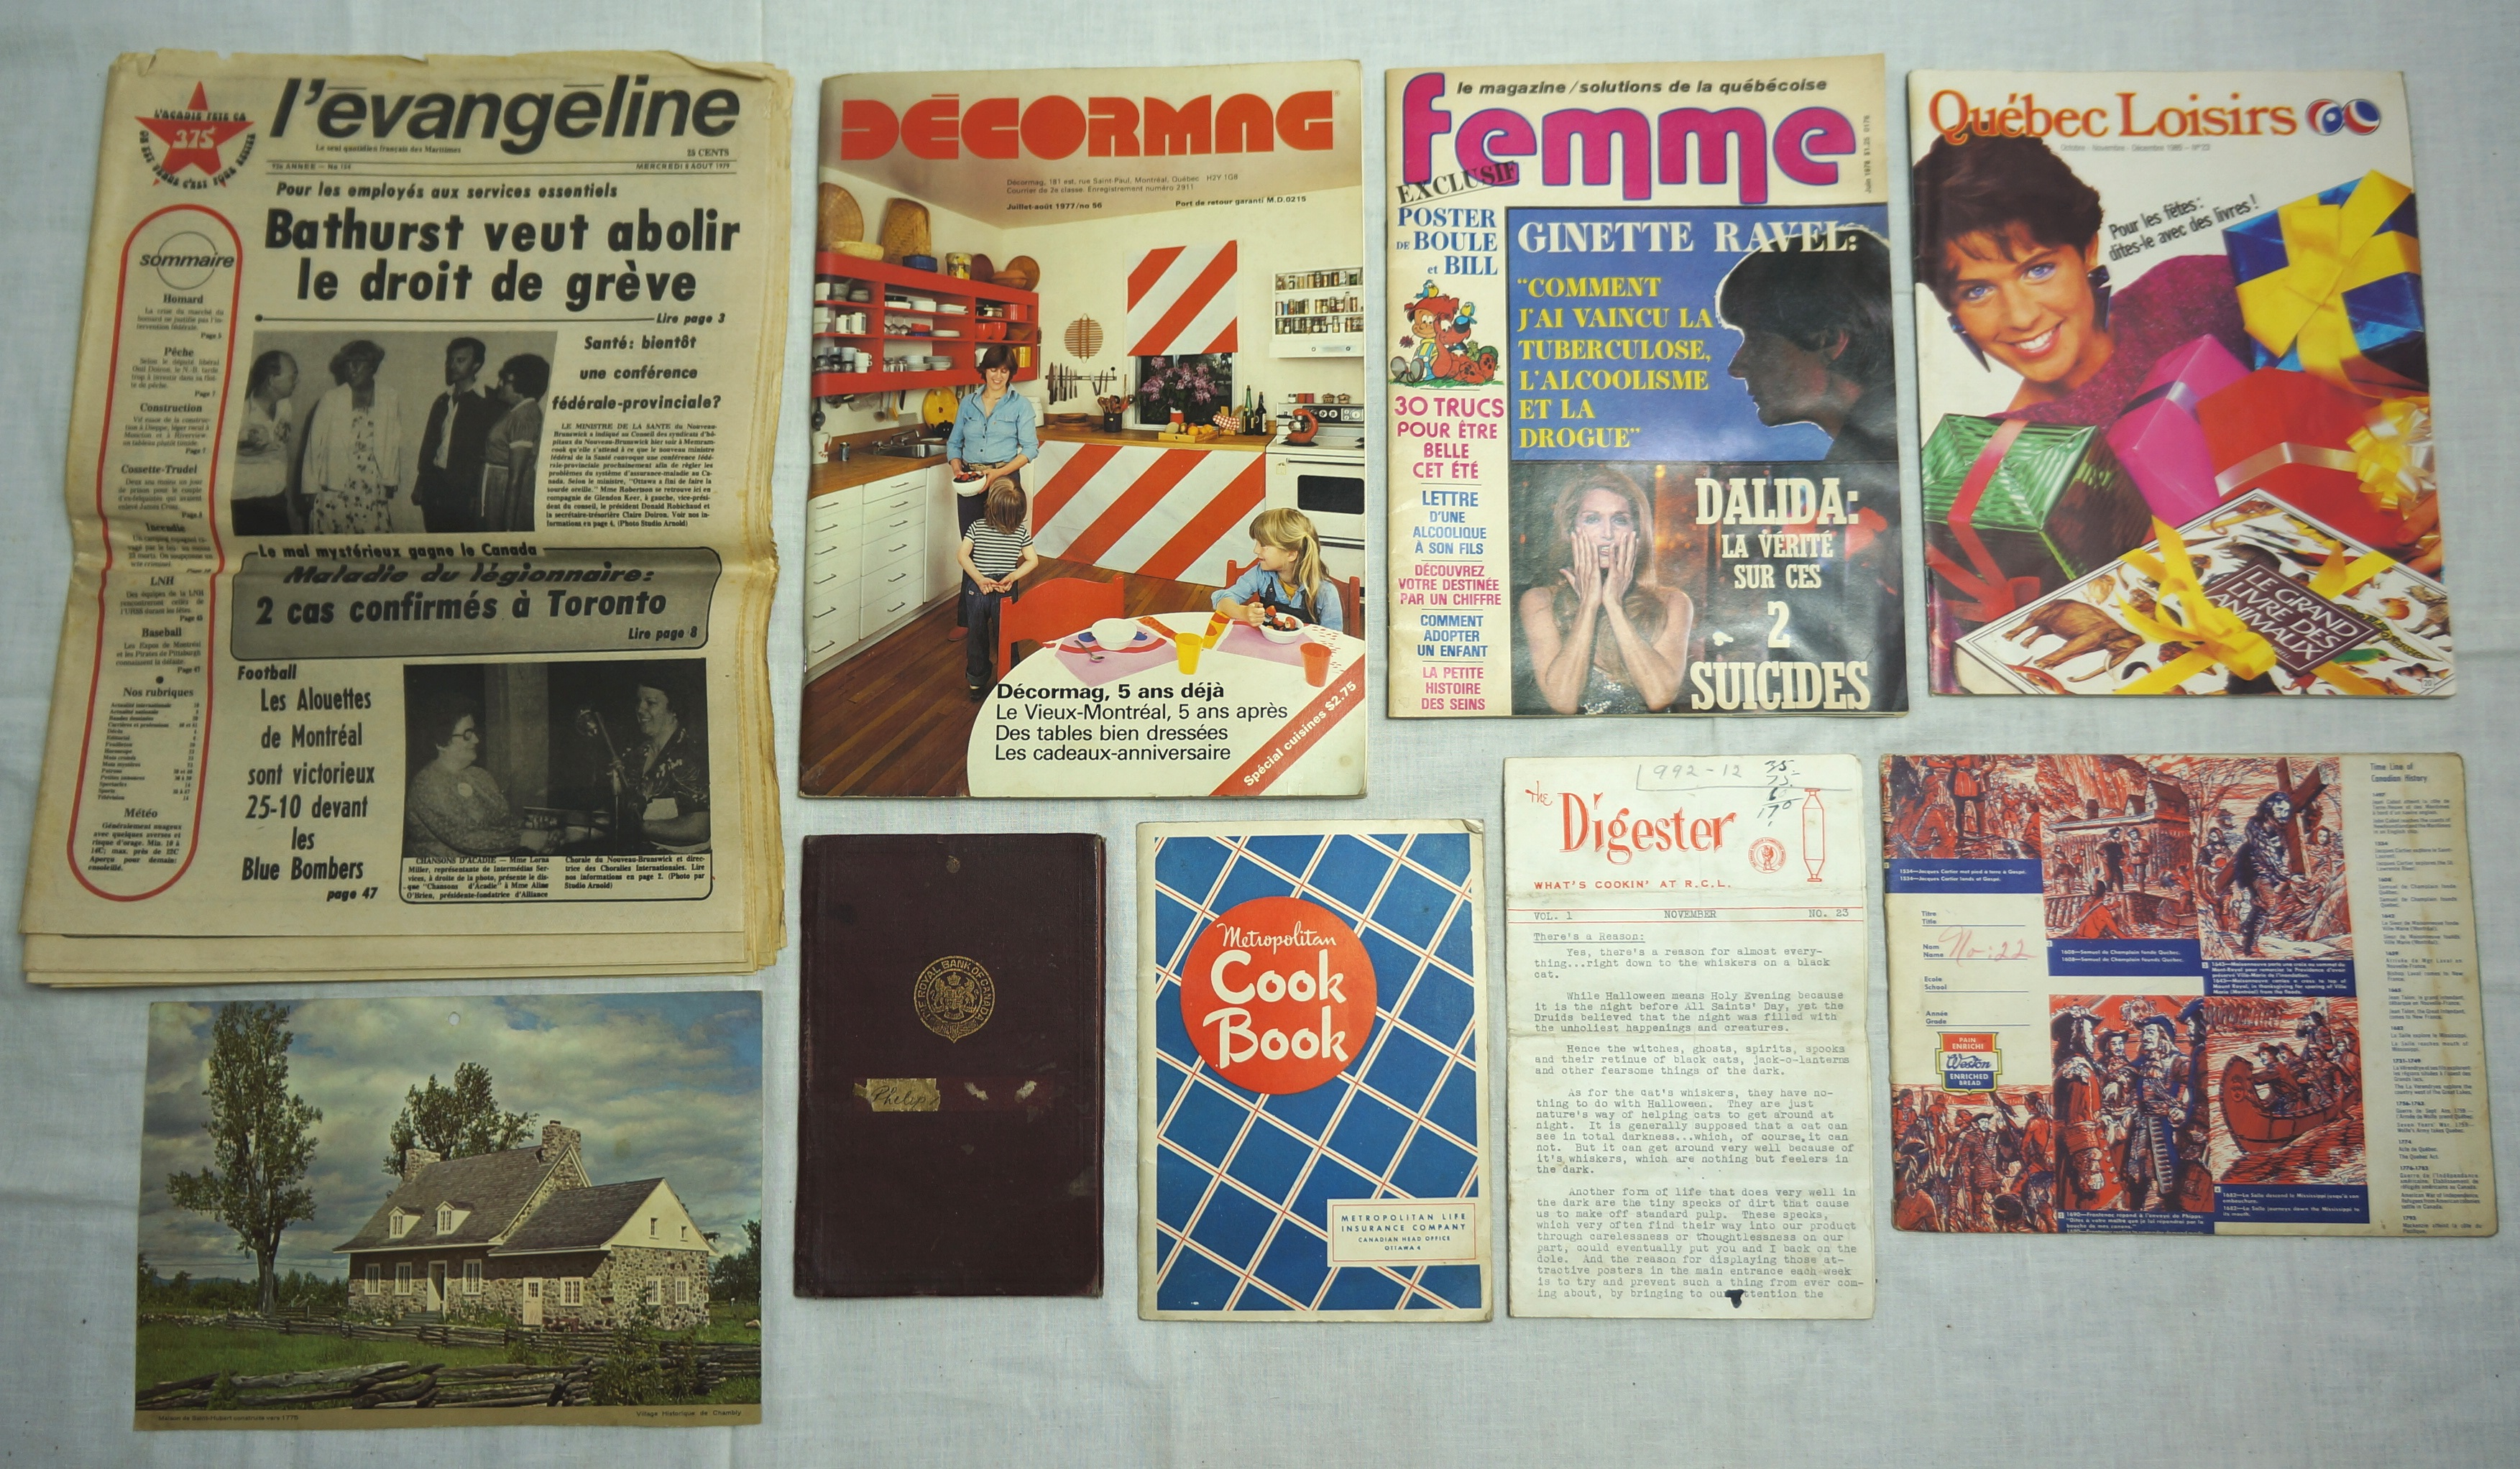 Vintage Page 5 Things I Find In The Garbage 1949 Parker 51 Fountain Pen Diagram And Gift Set Photo Print It Stopped Printing 1982 But Apparently Was Once Main Newspaper For Acadians Eastern Canada